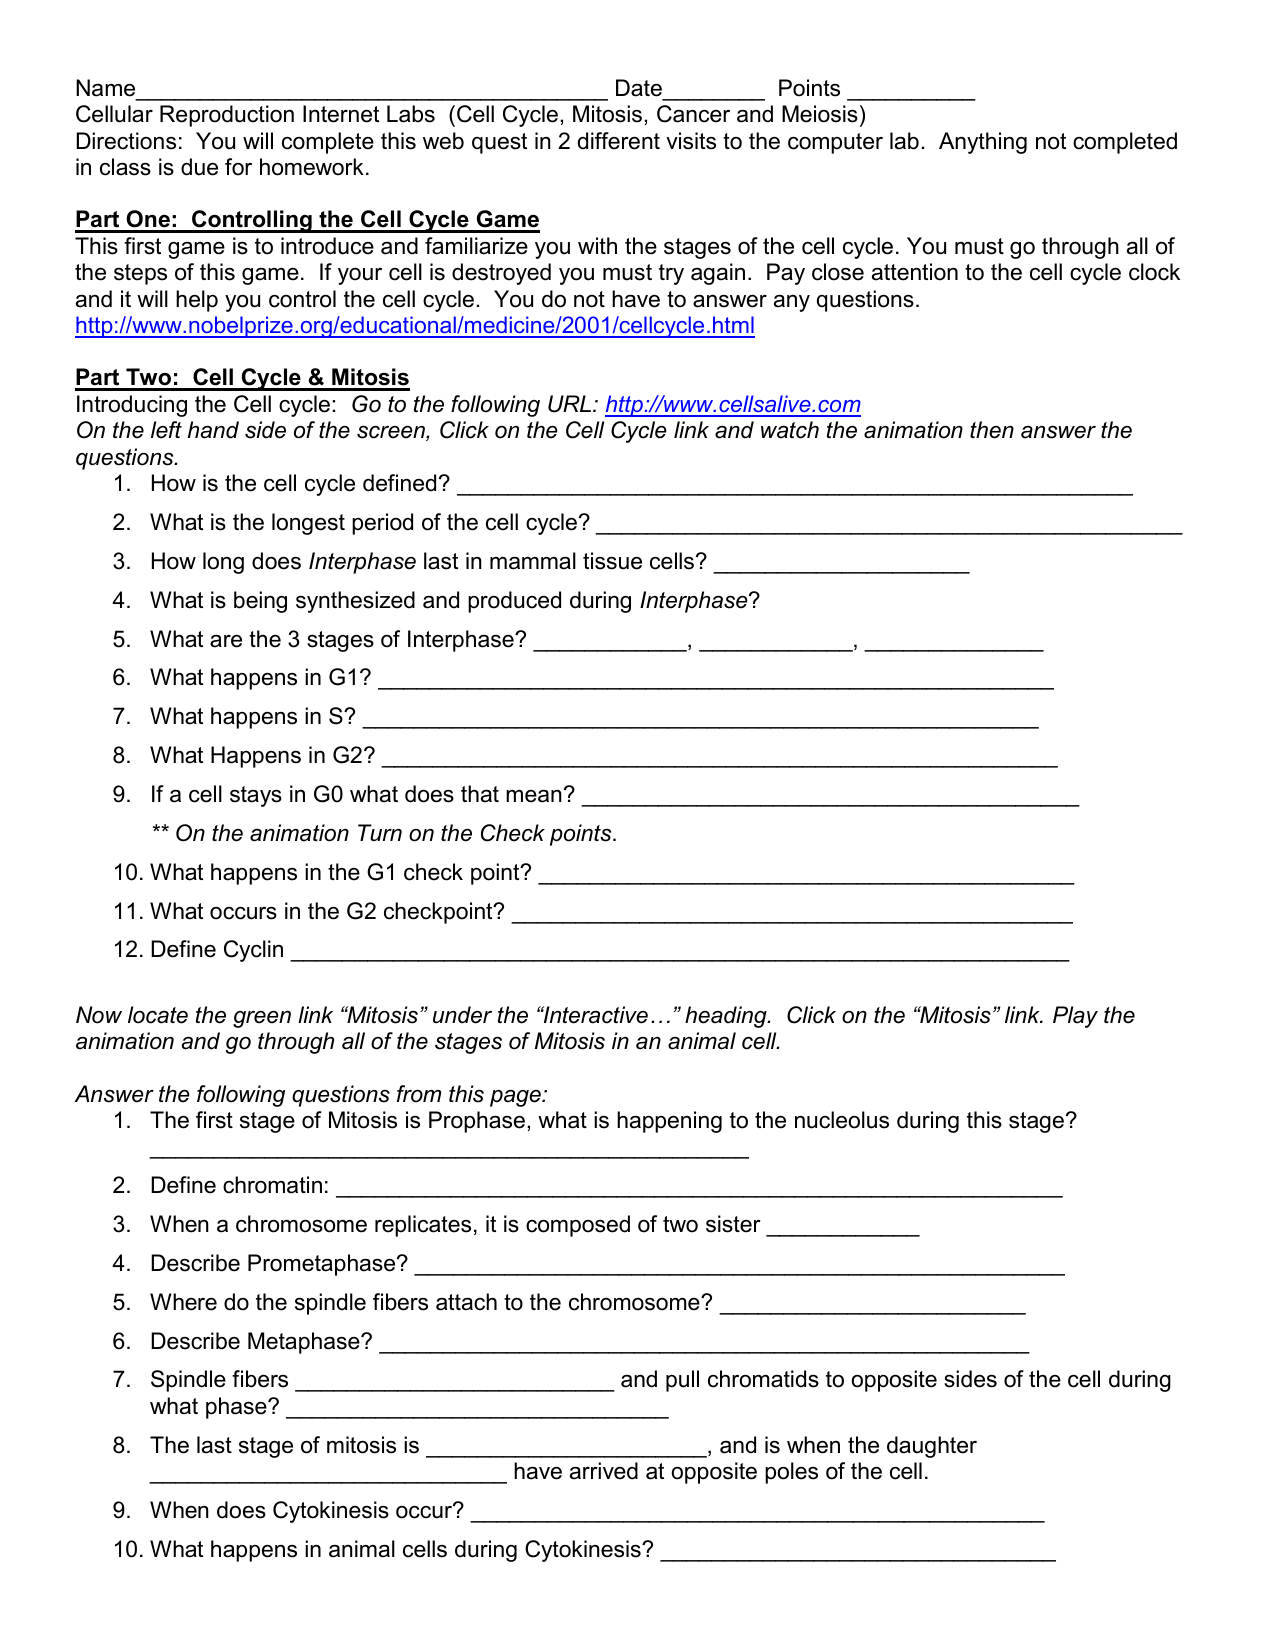 Worksheet Answer Cell Cycle And Mitosis Webquest Answers